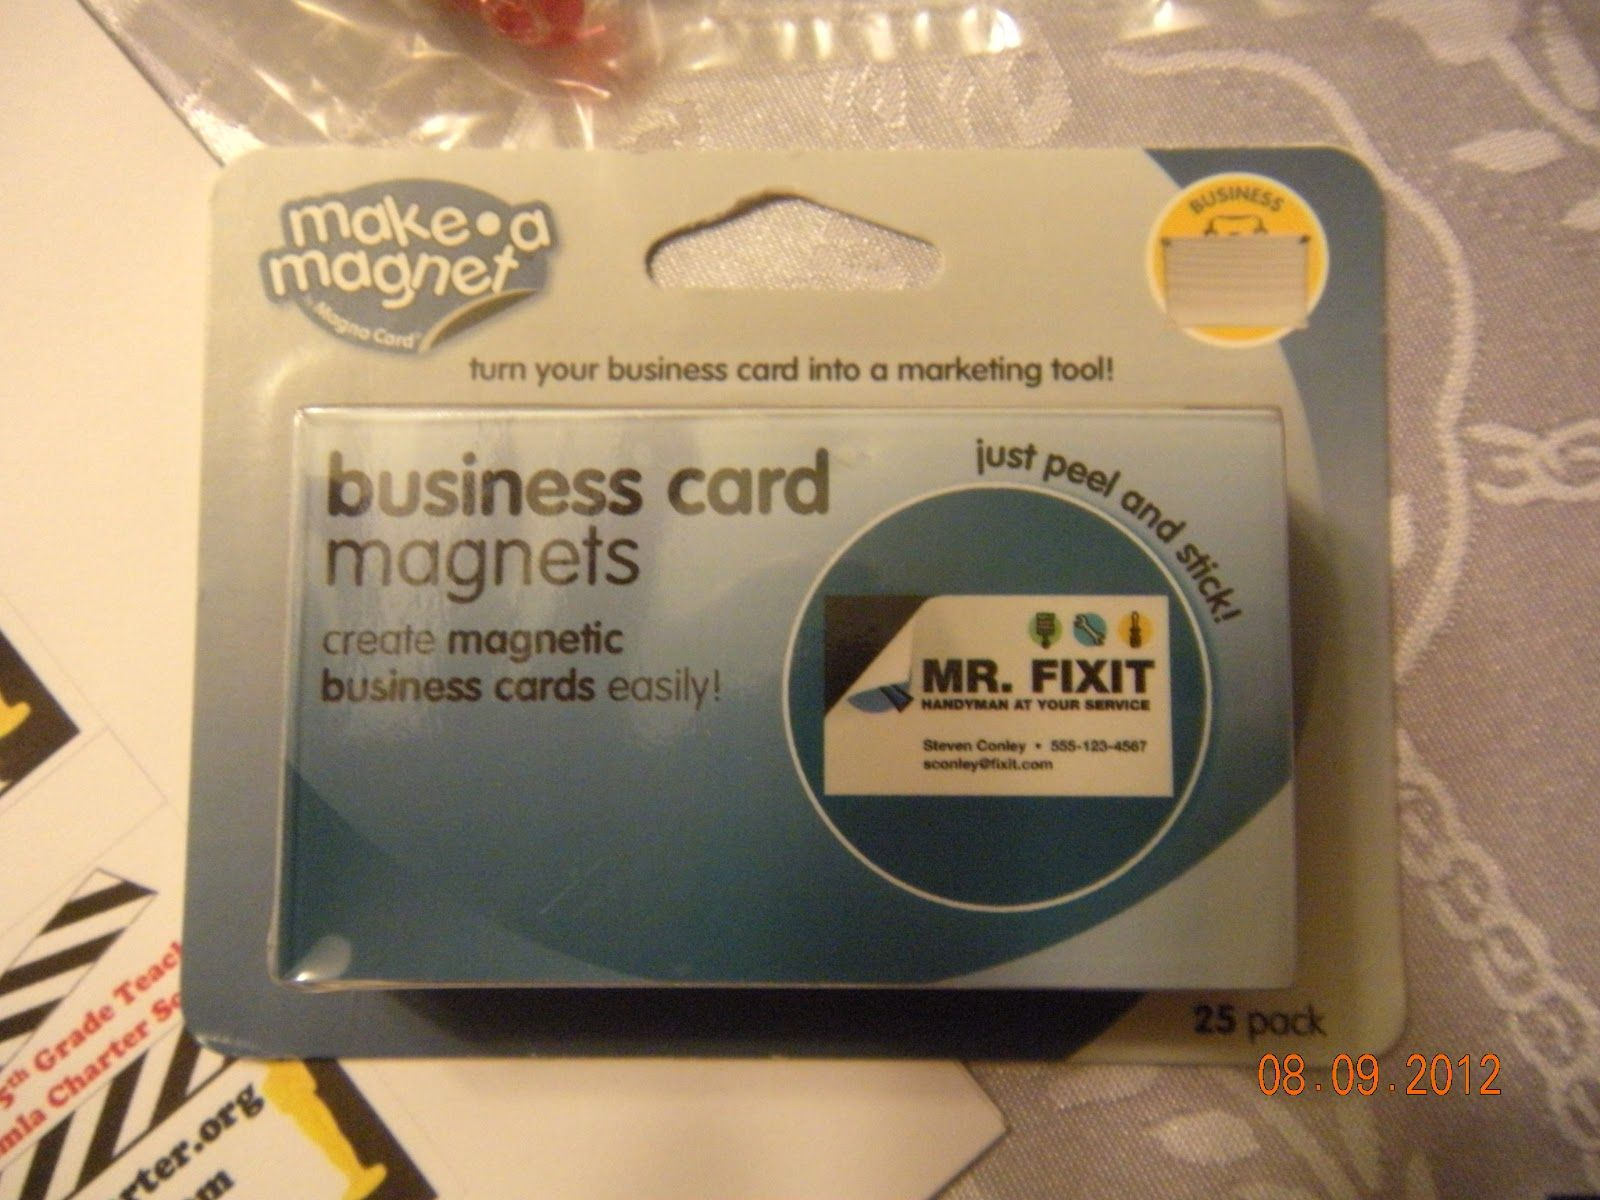 business card magnets from office depot $8